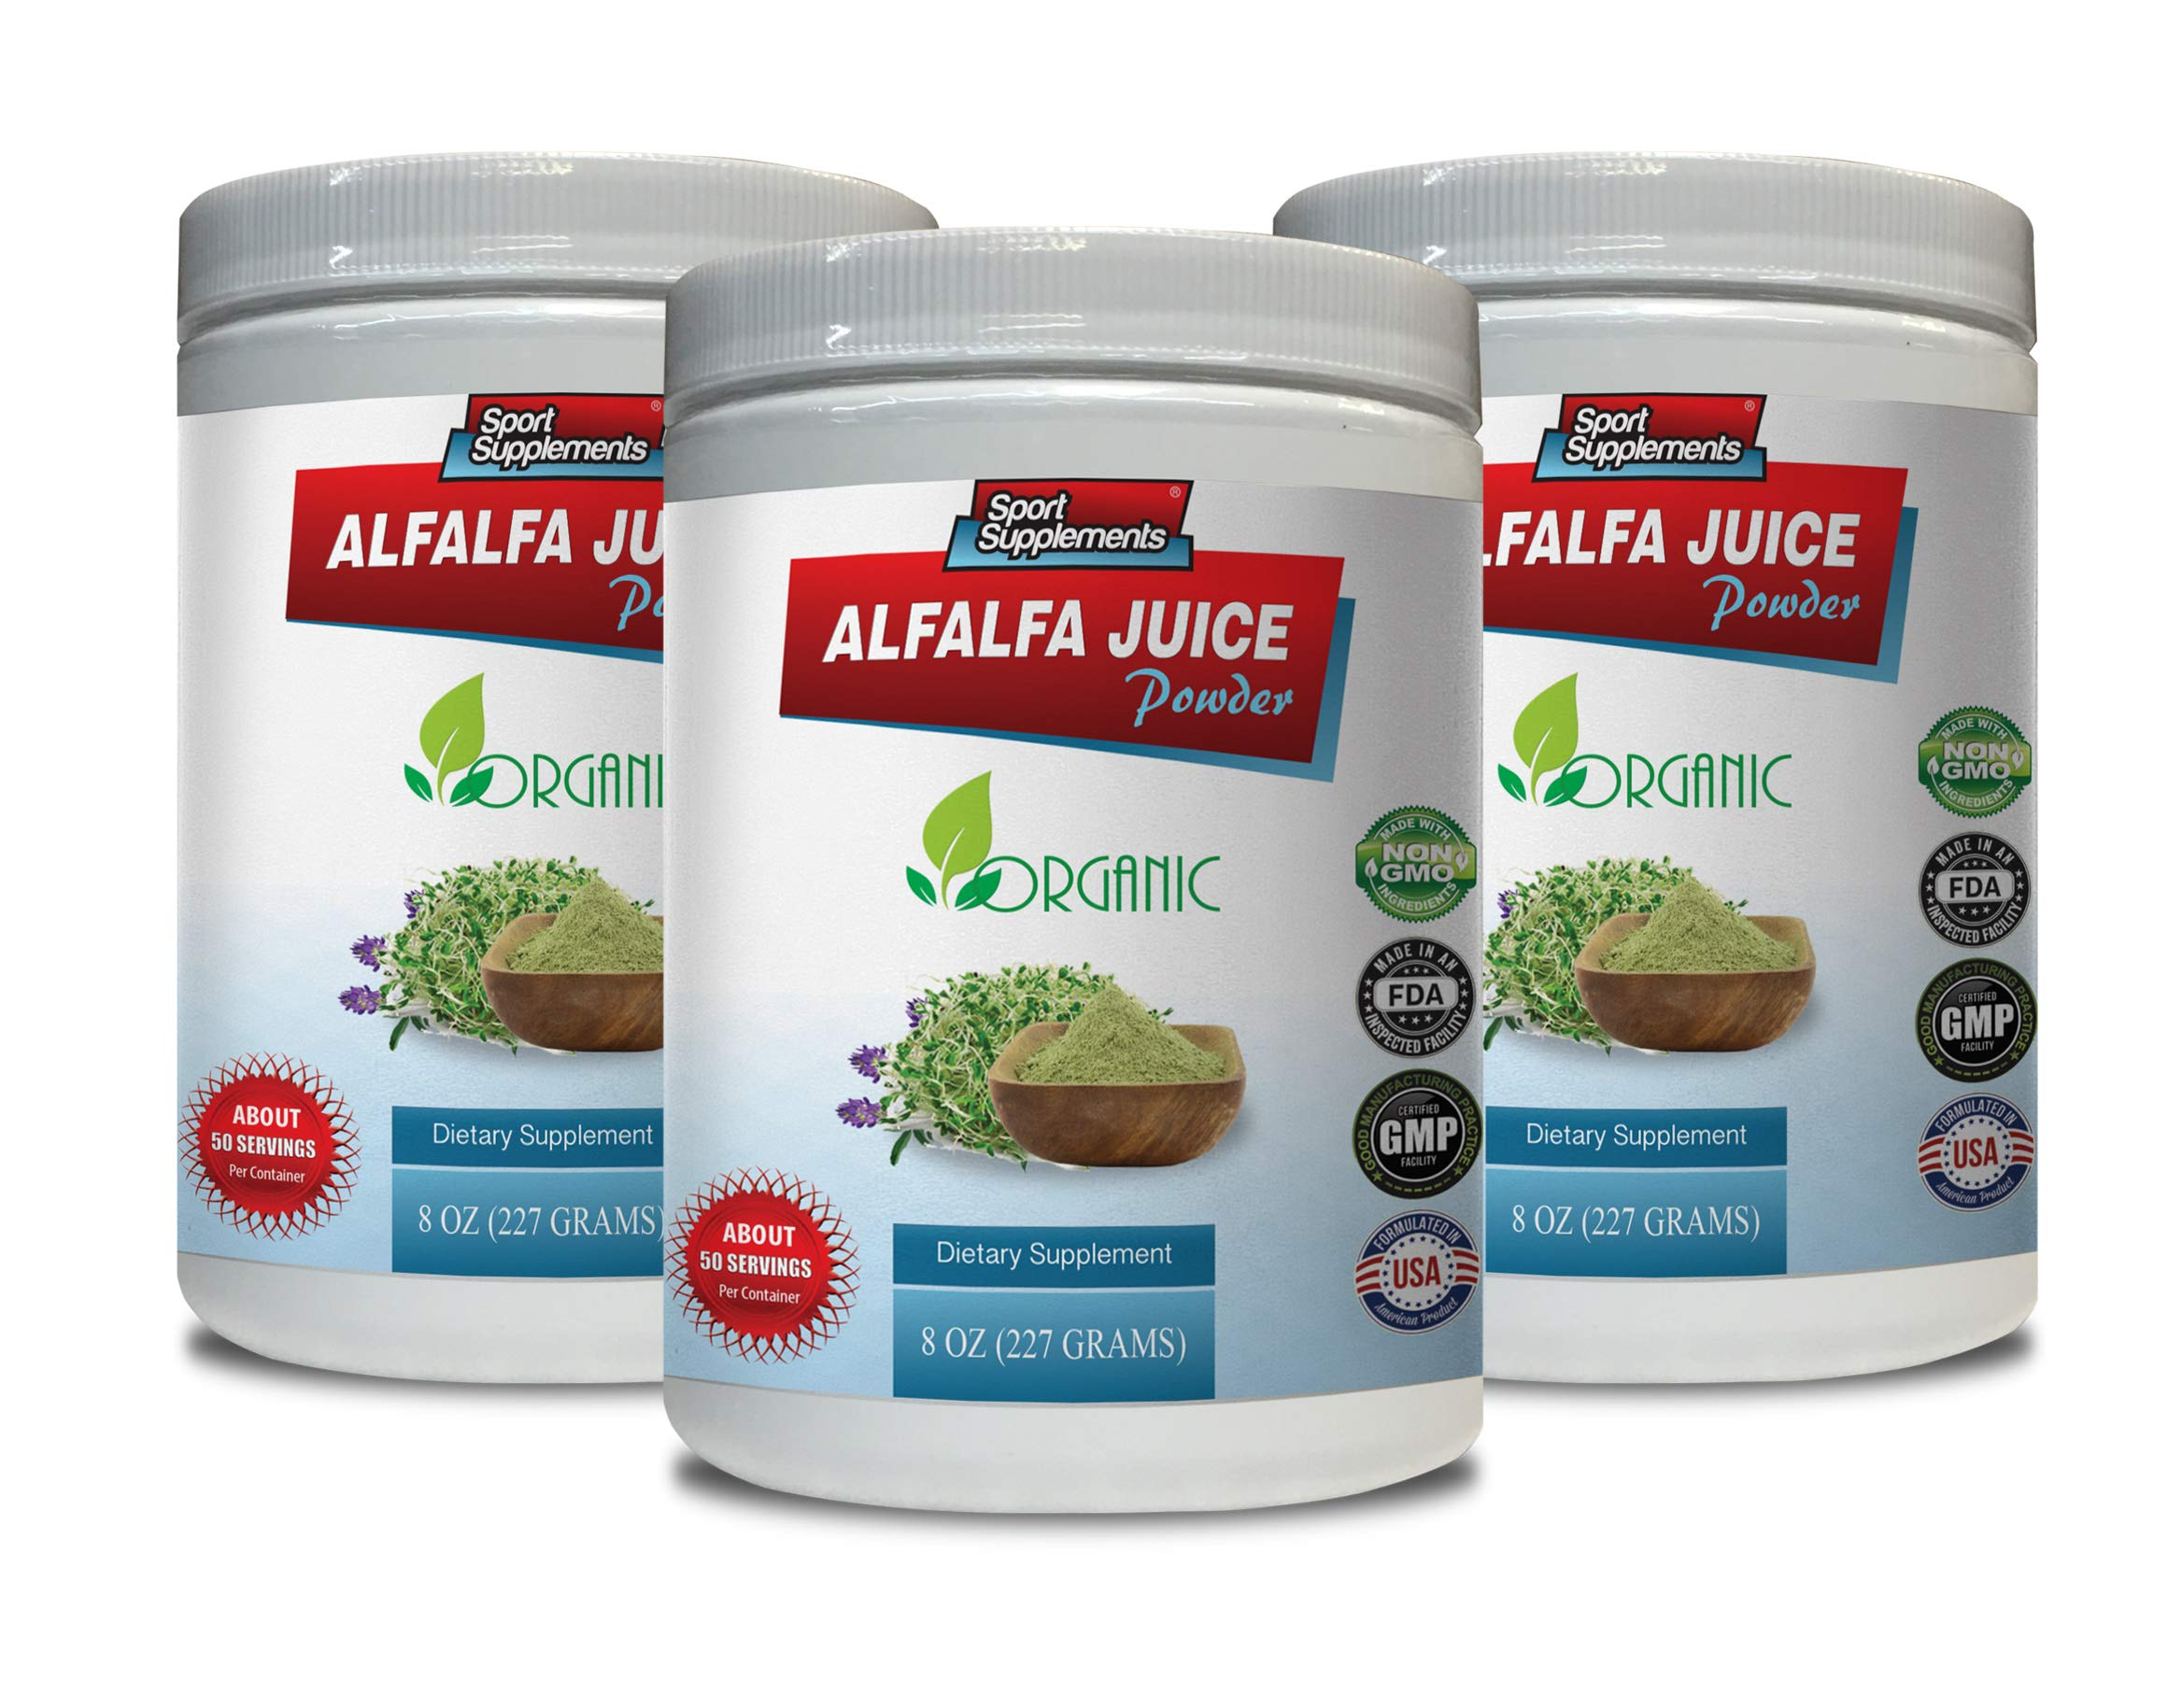 antioxidant Green superfood Powder - Alfalfa Juice Powder - Organic Dietary Supplement - superfood Powder for Women - 3 Cans 24 OZ (150 Servings) by Sport Supplements (Image #1)